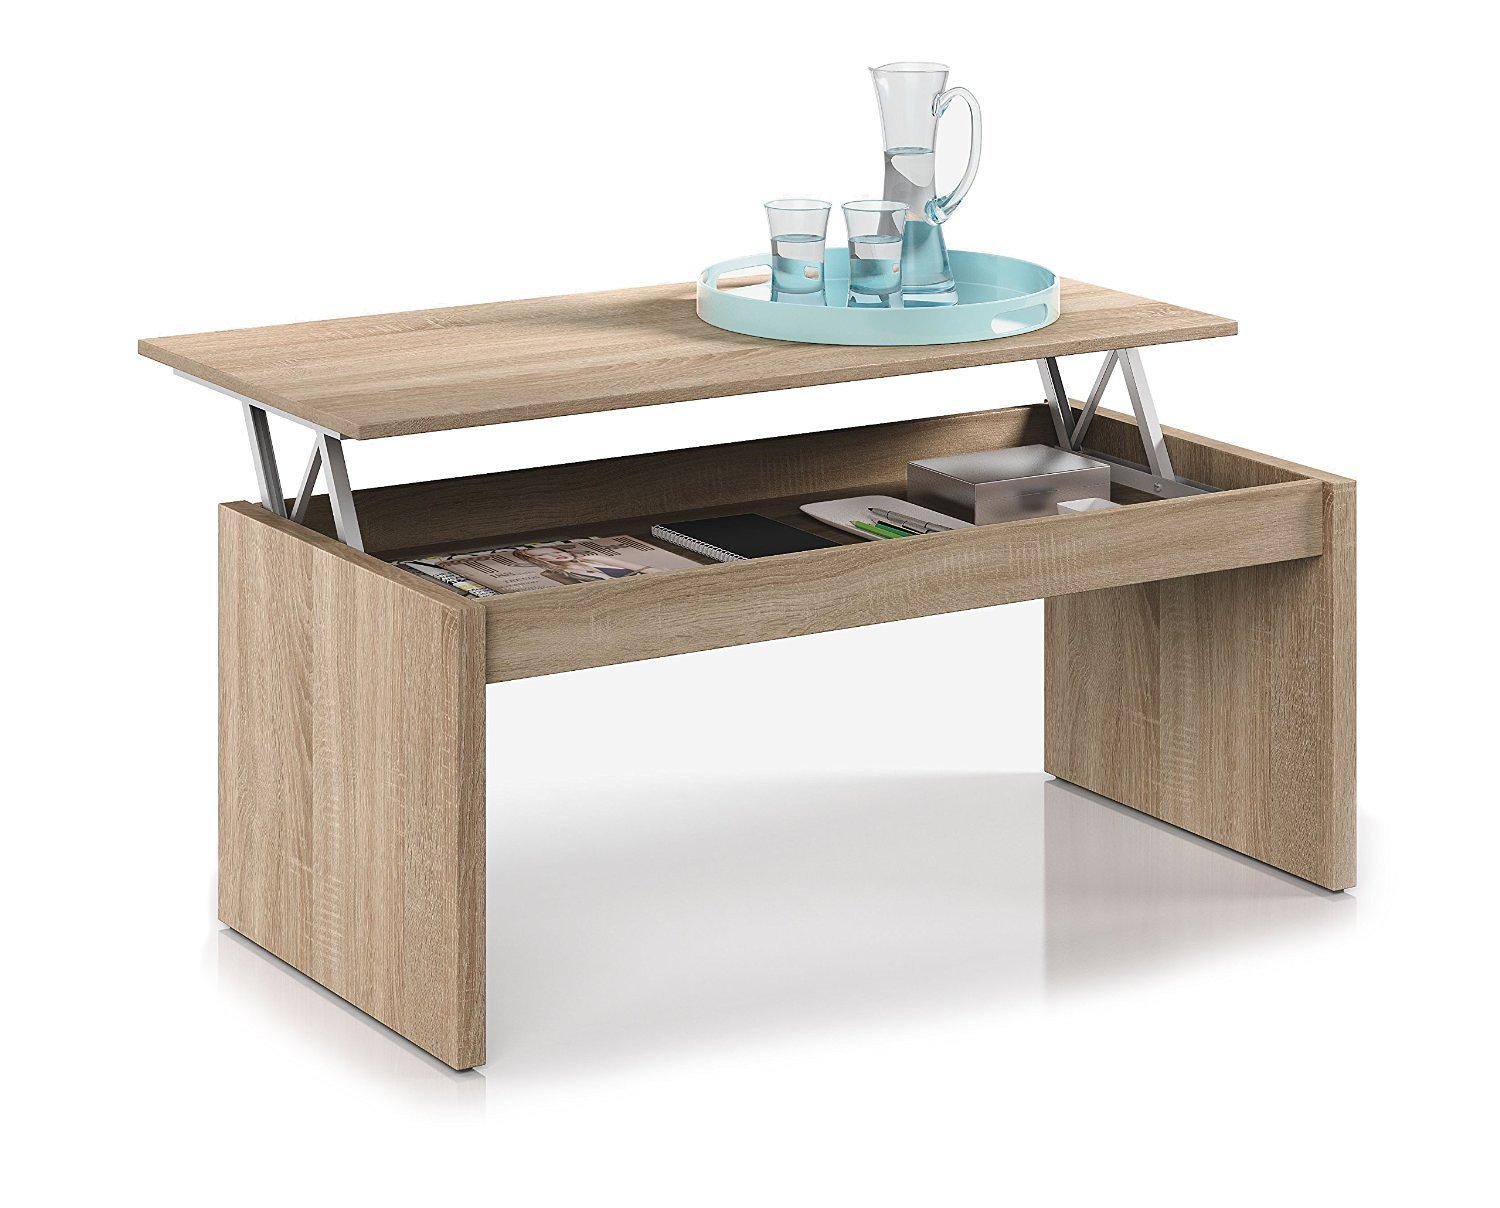 Fabulous habitdesign f table basse chne naturel avec for Table basse tiroir